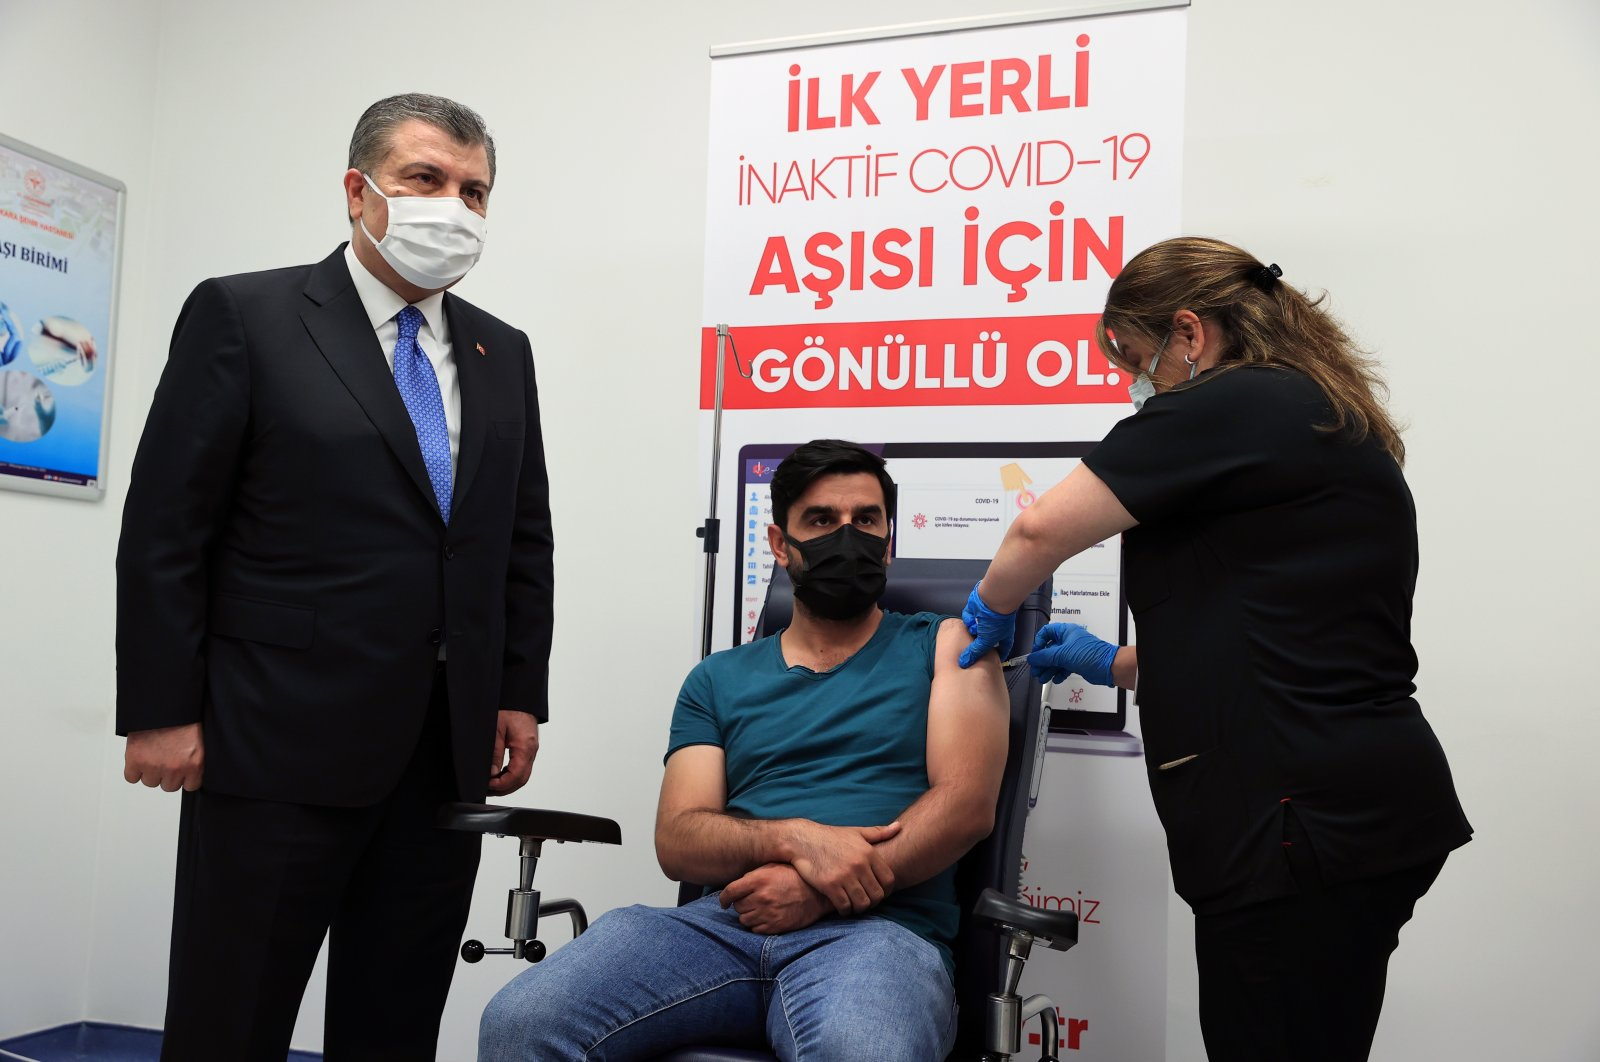 Yasin Kandemir, the first volunteer of the Phase 3 trial, gets vaccinated as Health Minister Fahrettin Koca looks on, in the capital Ankara, Turkey, June 22, 2021. (AA PHOTO)